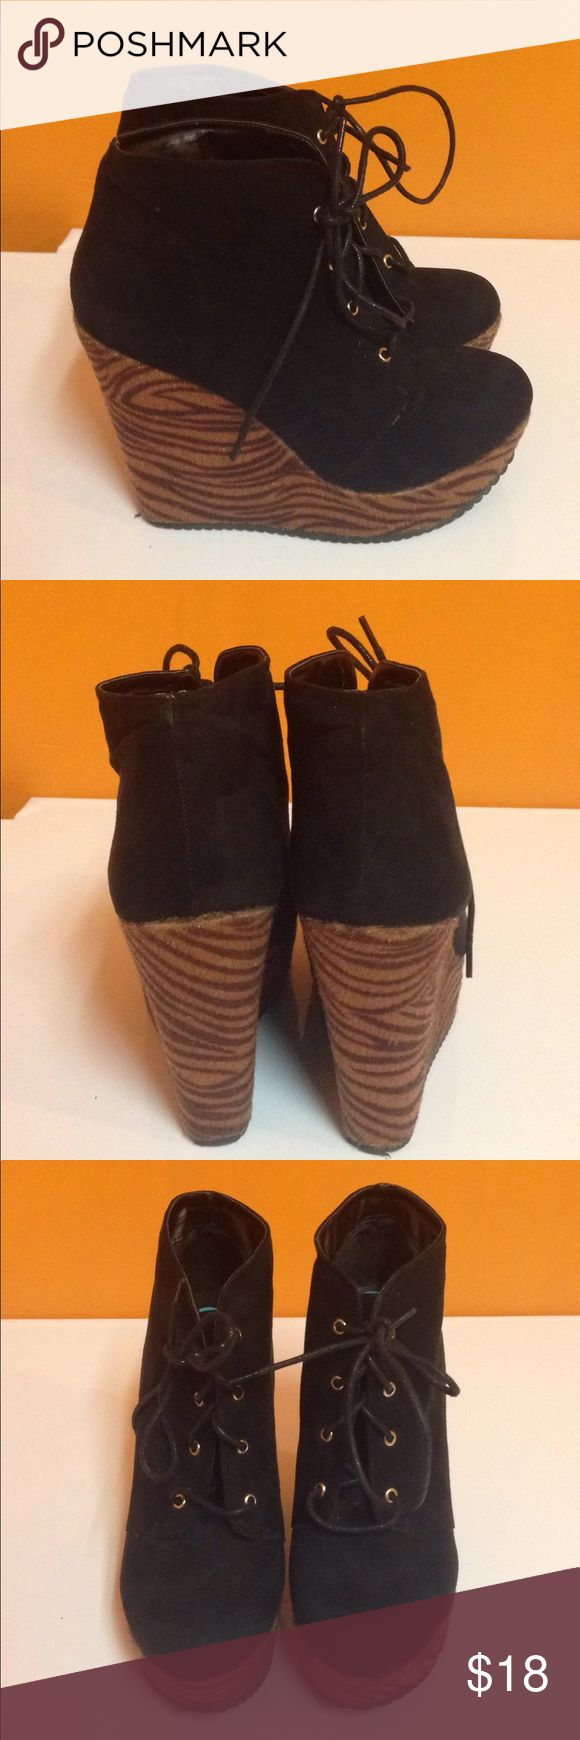 GUESS Black Zebra Heel Wedges,Size 8 Great condition.Size 8.5 inches high. G by Guess Shoes Wedges